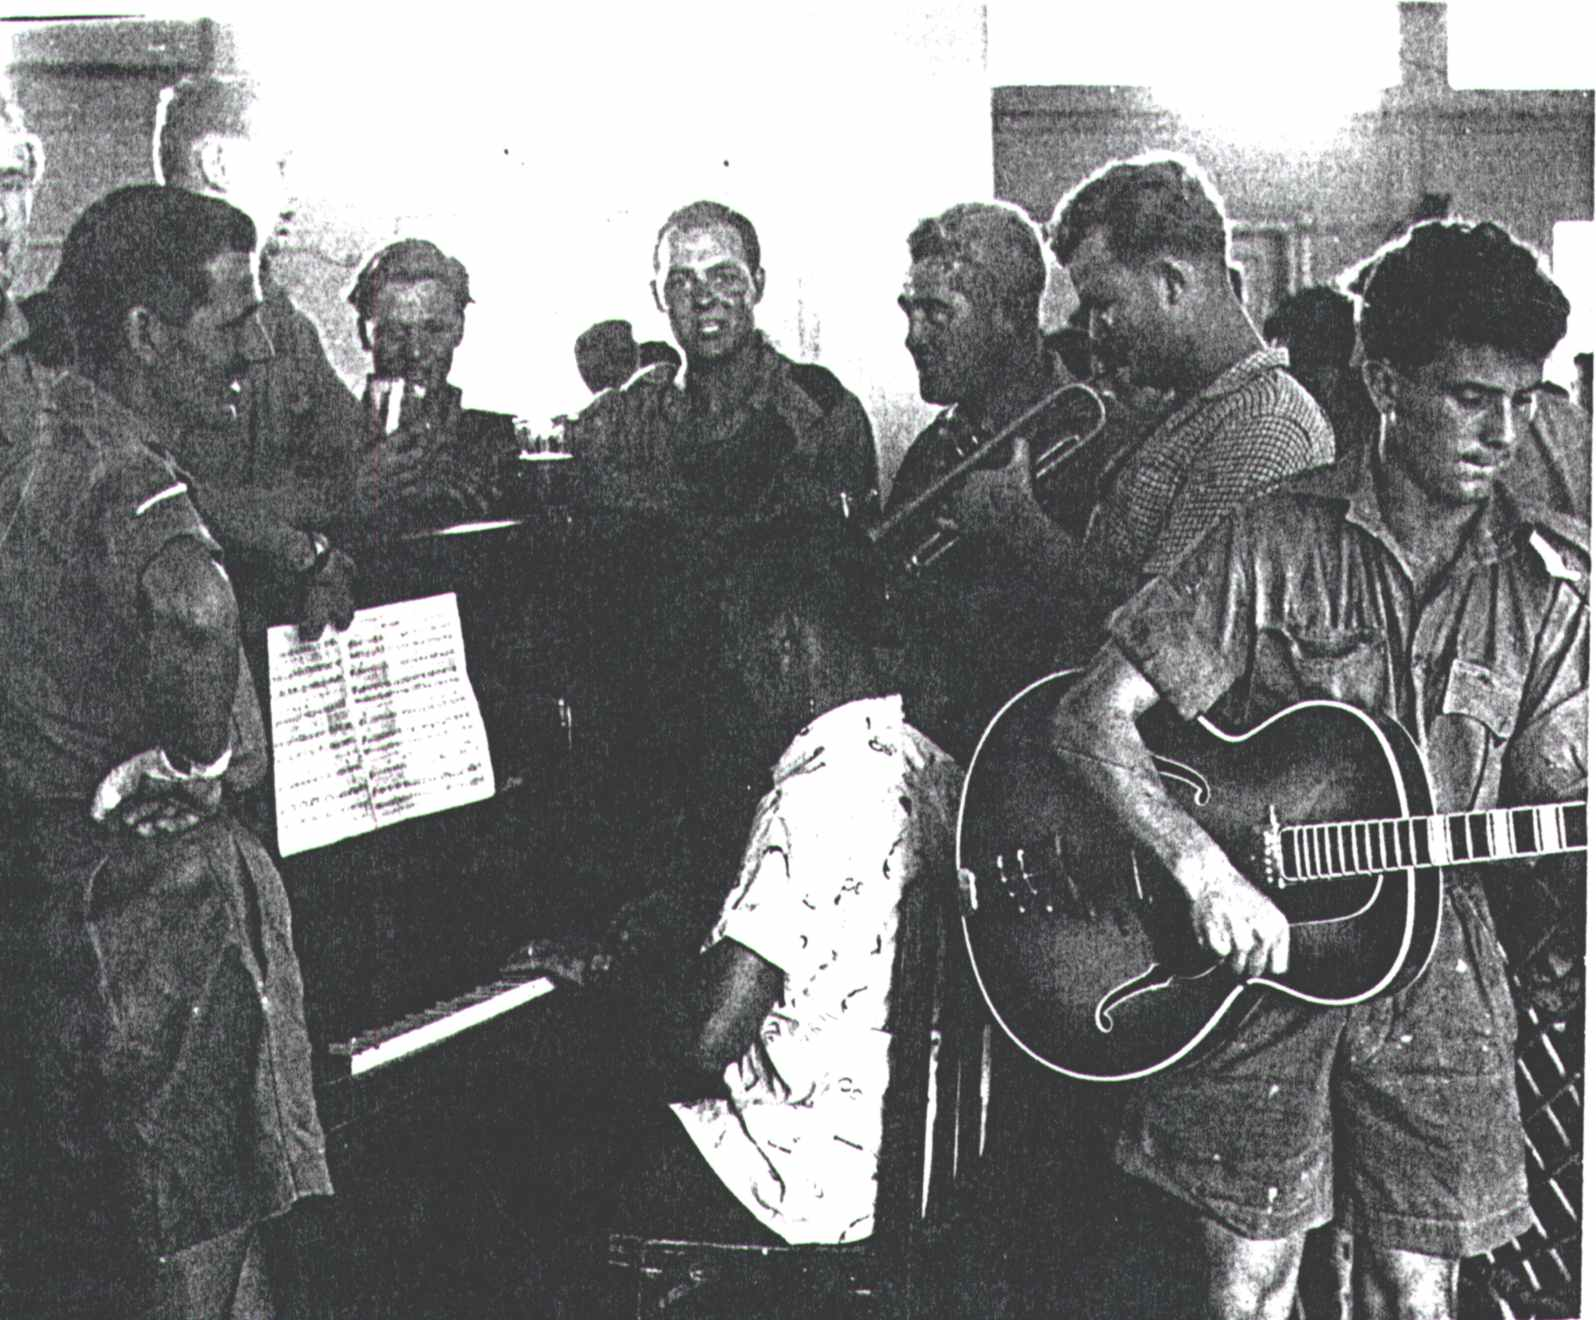 Group of Musicians – Possibly Practicing, 1957/9